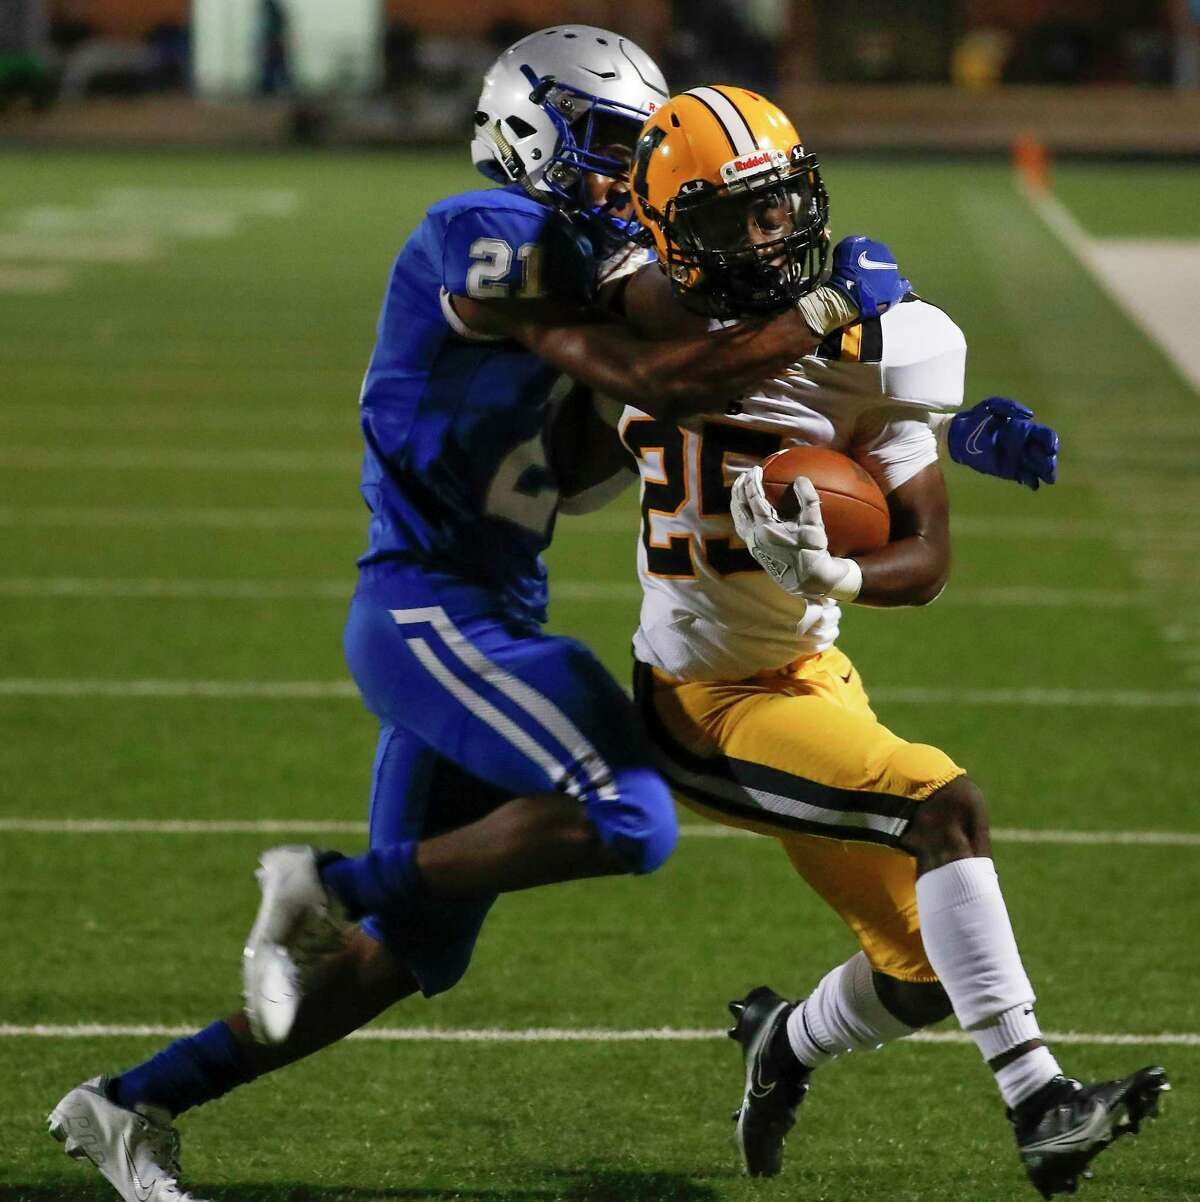 Willowridge defensive back Kaleb Williams (21) stops Fort Bend Marshall running back Aaron McGowen (25) just short of the goal line during an 11-5A matchup at Hall Stadium Thursday, Nov. 12, 2020 in Missouri City.